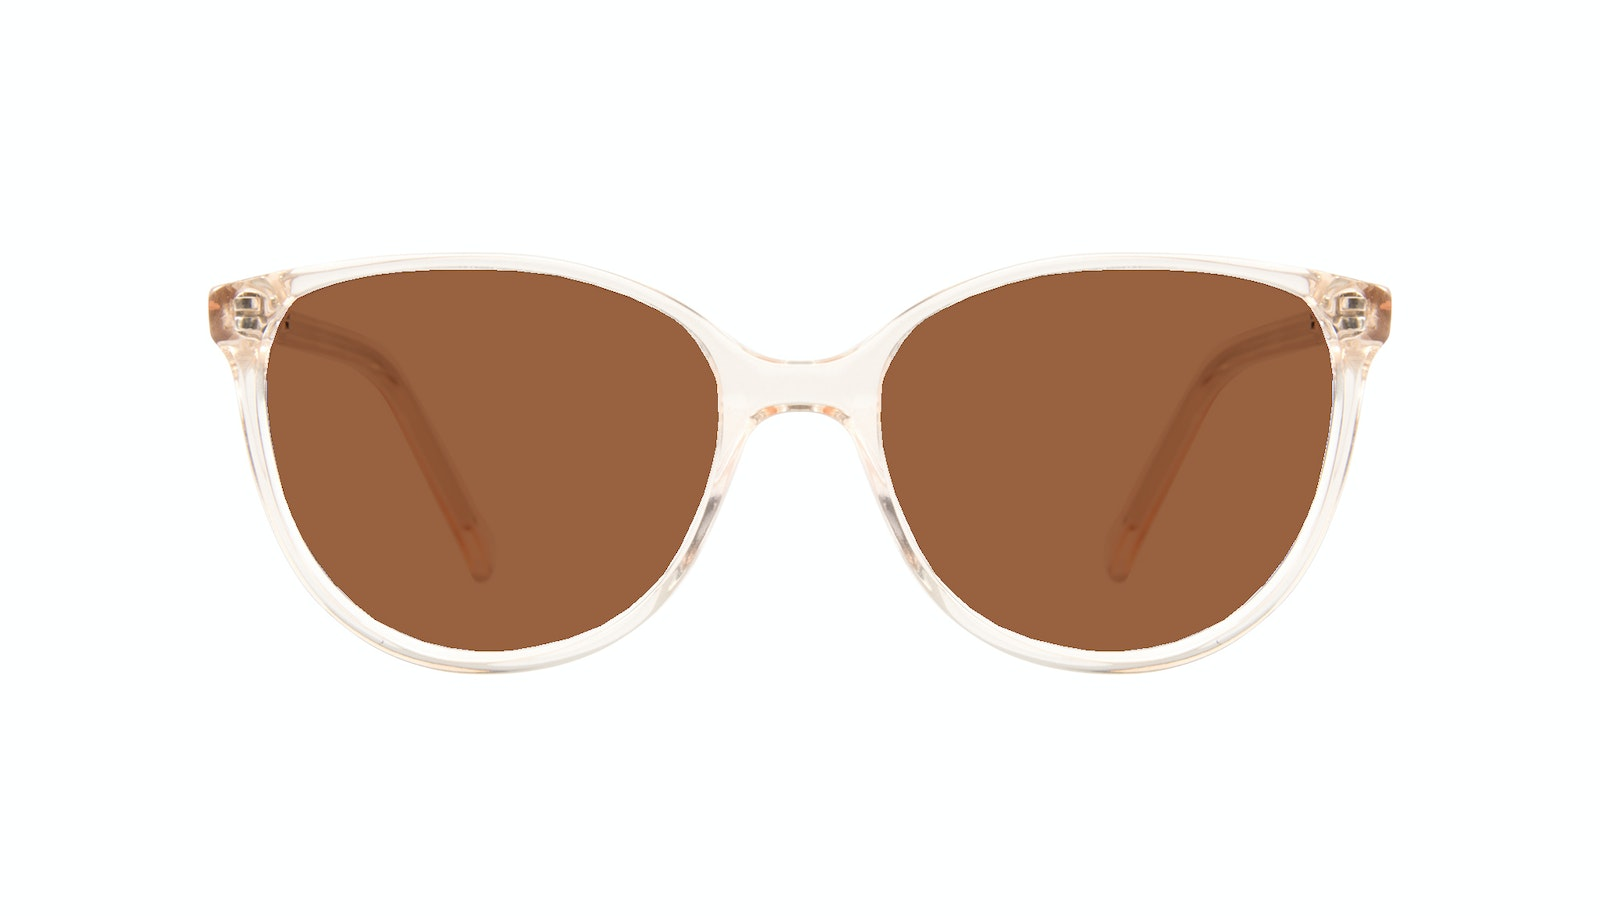 Affordable Fashion Glasses Round Sunglasses Women Imagine Petite Blond